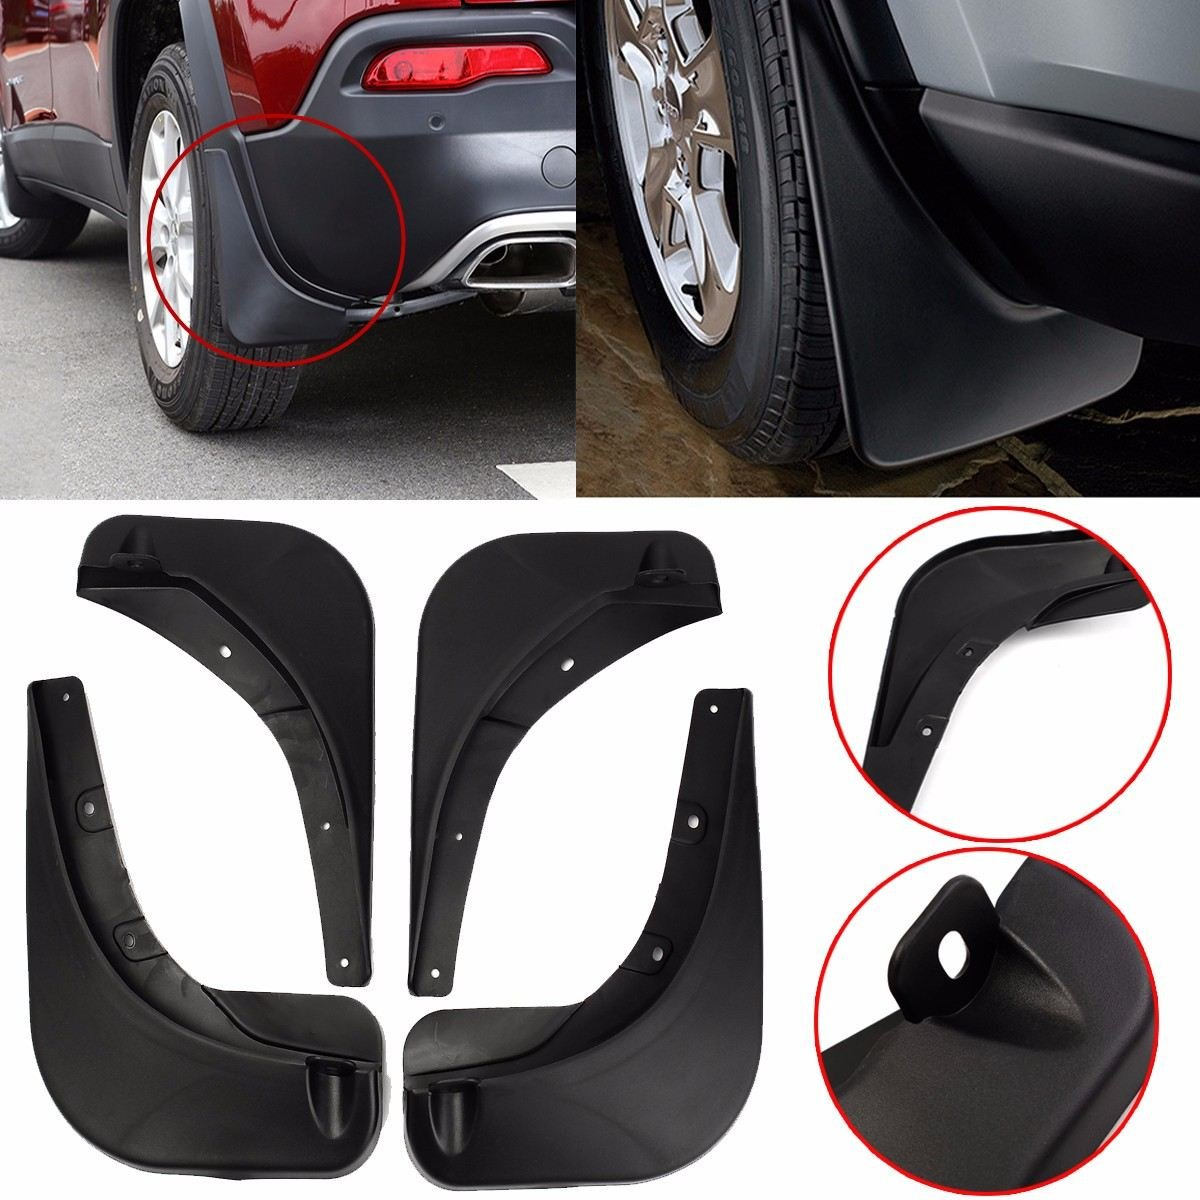 BEESCLOVER For Jeep Renegade 15-18 Stylish Car Front Rear Mud Flaps Mudguard Guards